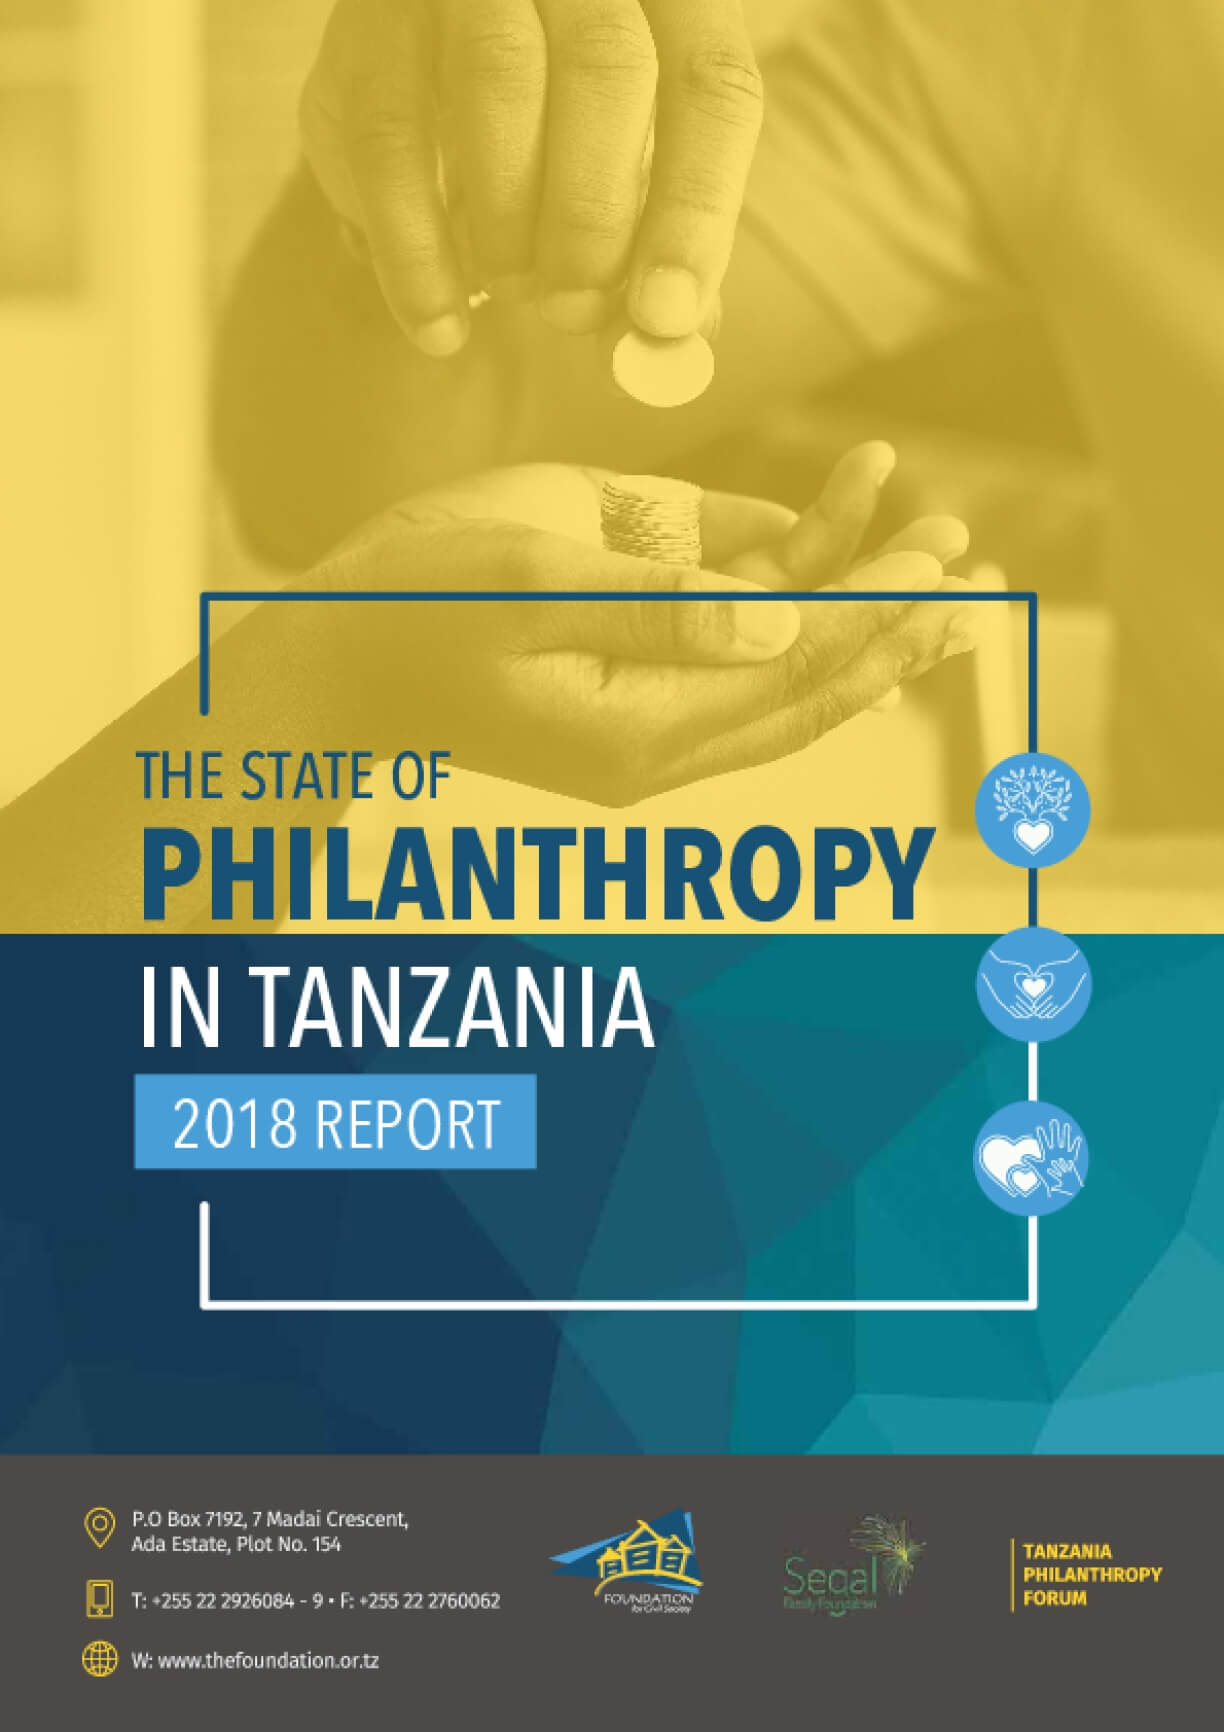 The State of Philanthropy In Tanzania 2018 Report